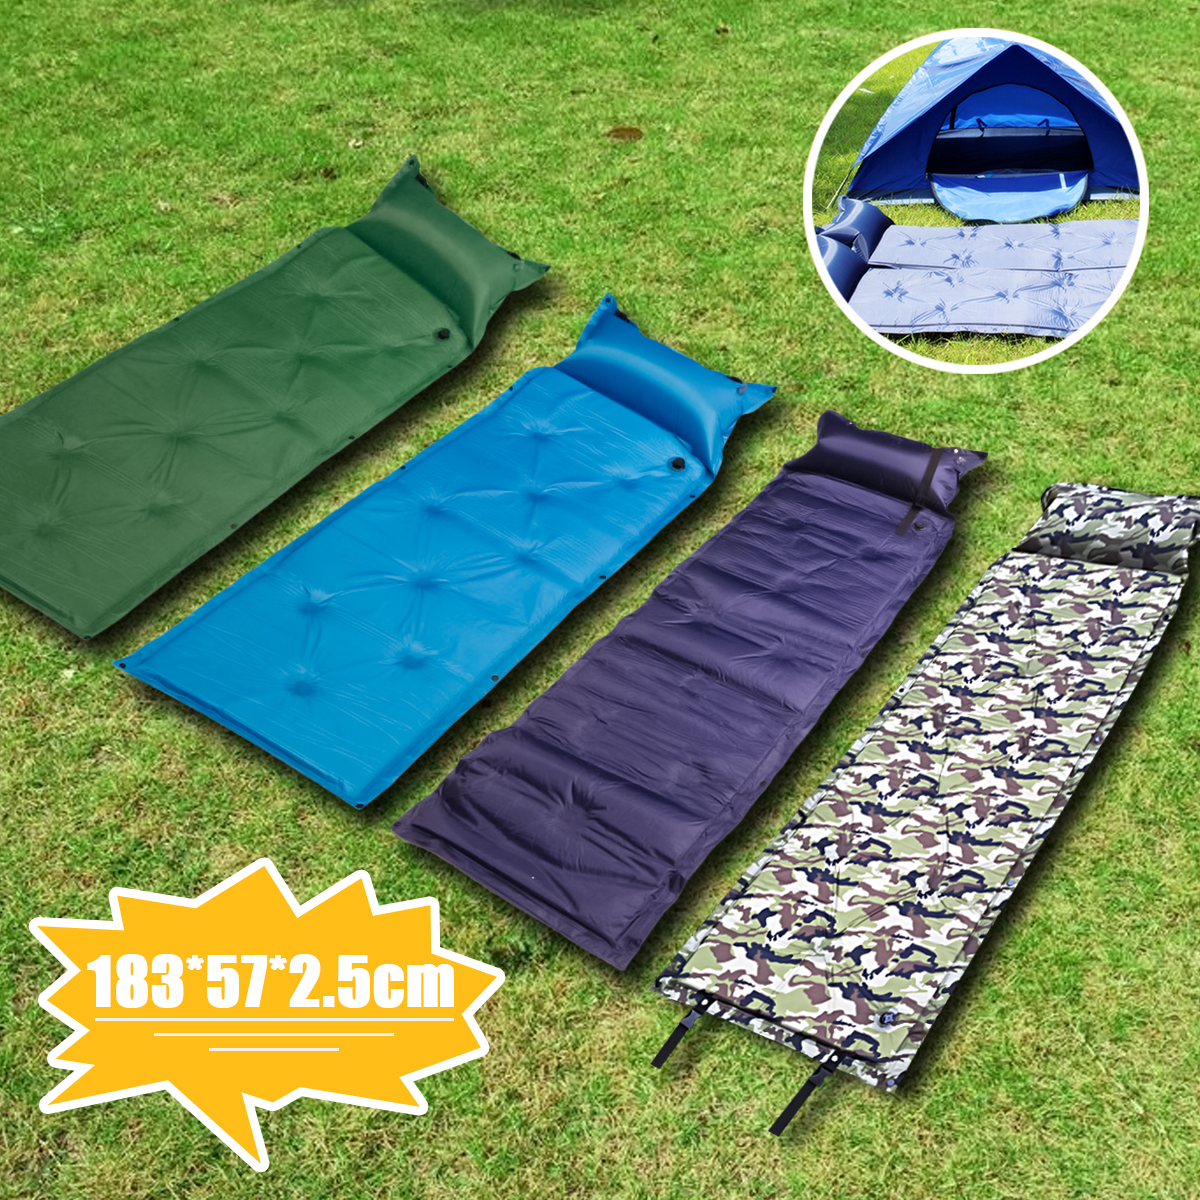 Inflatable Bed Netherlands: IPRee® 183x57x2.5cm Self Inflatable Air Mattress Camping